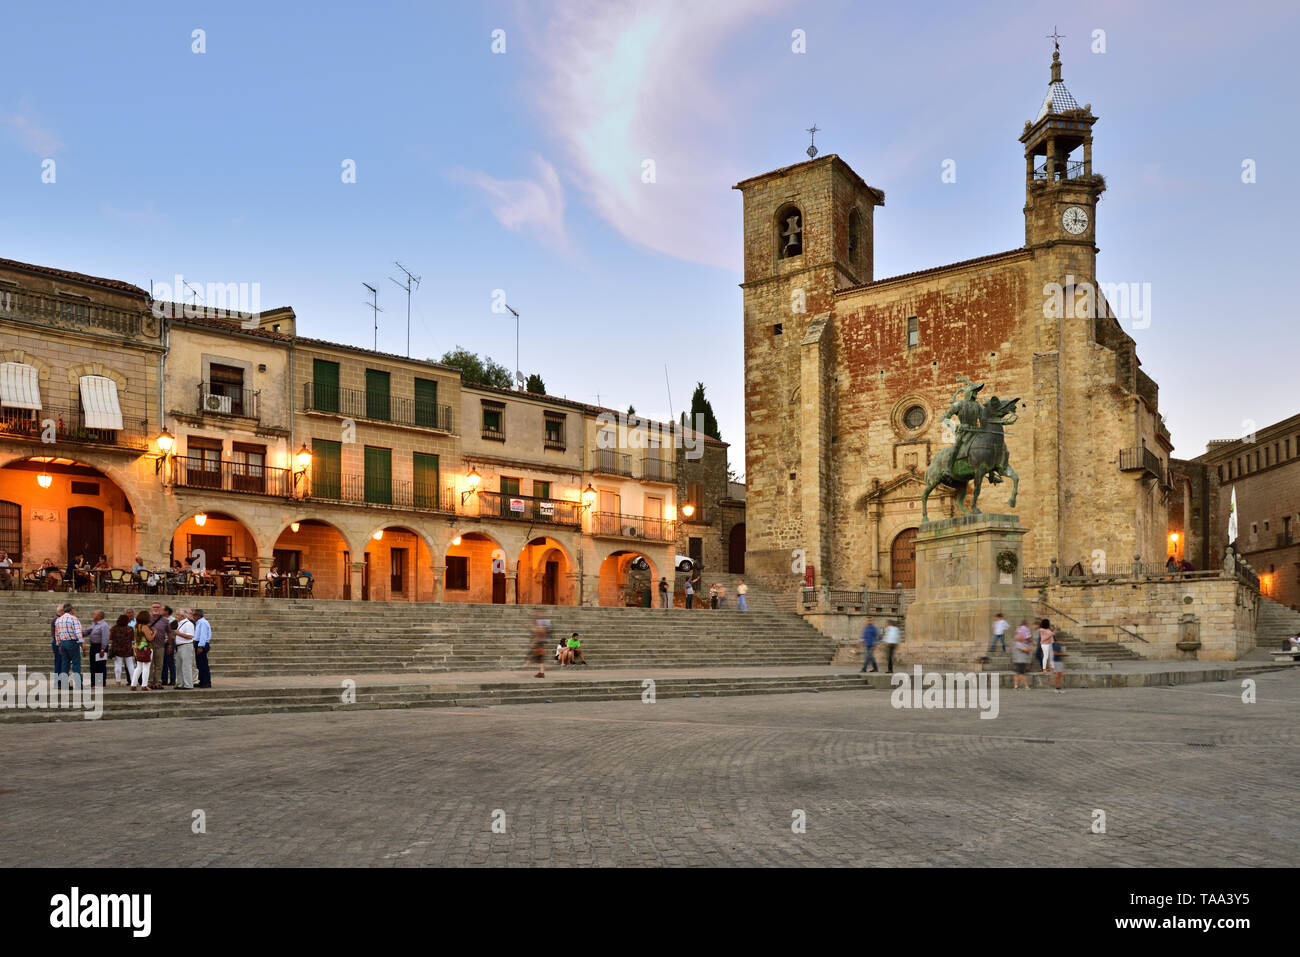 The Plaza Mayor in the evening with San Martin church. Trujillo, Spain - Stock Image